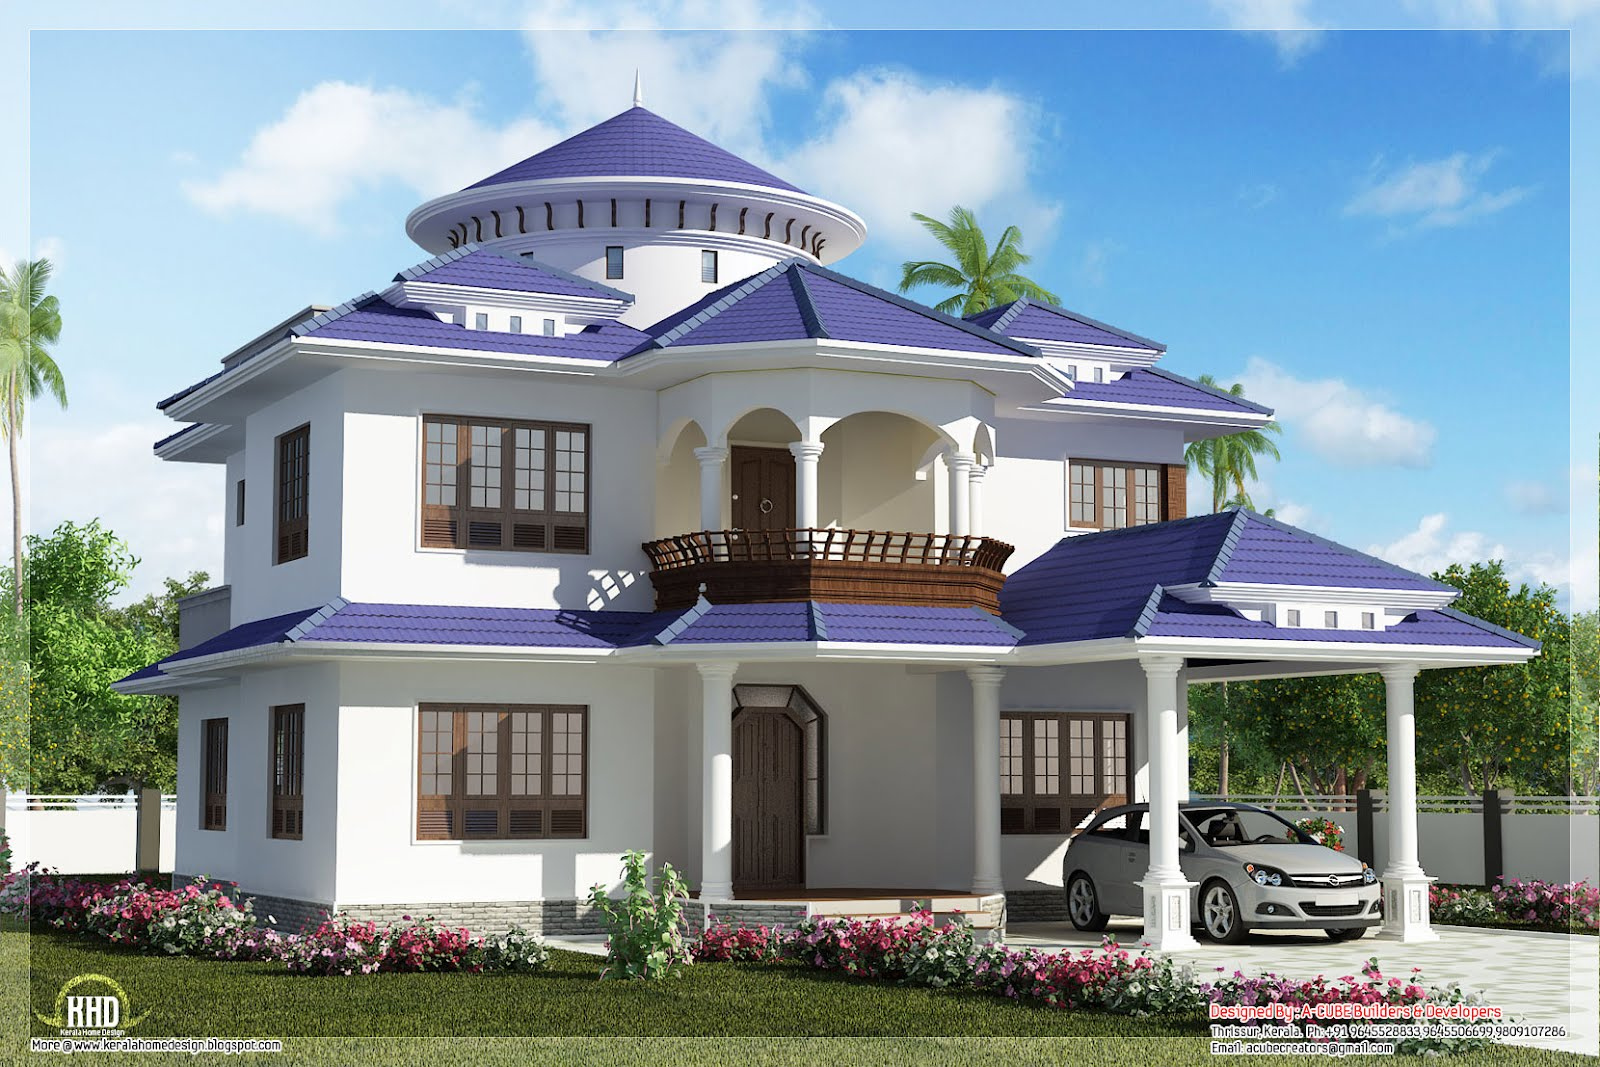 Beautiful dream home design in 2800 kerala home design and floor plans - Home house design ...